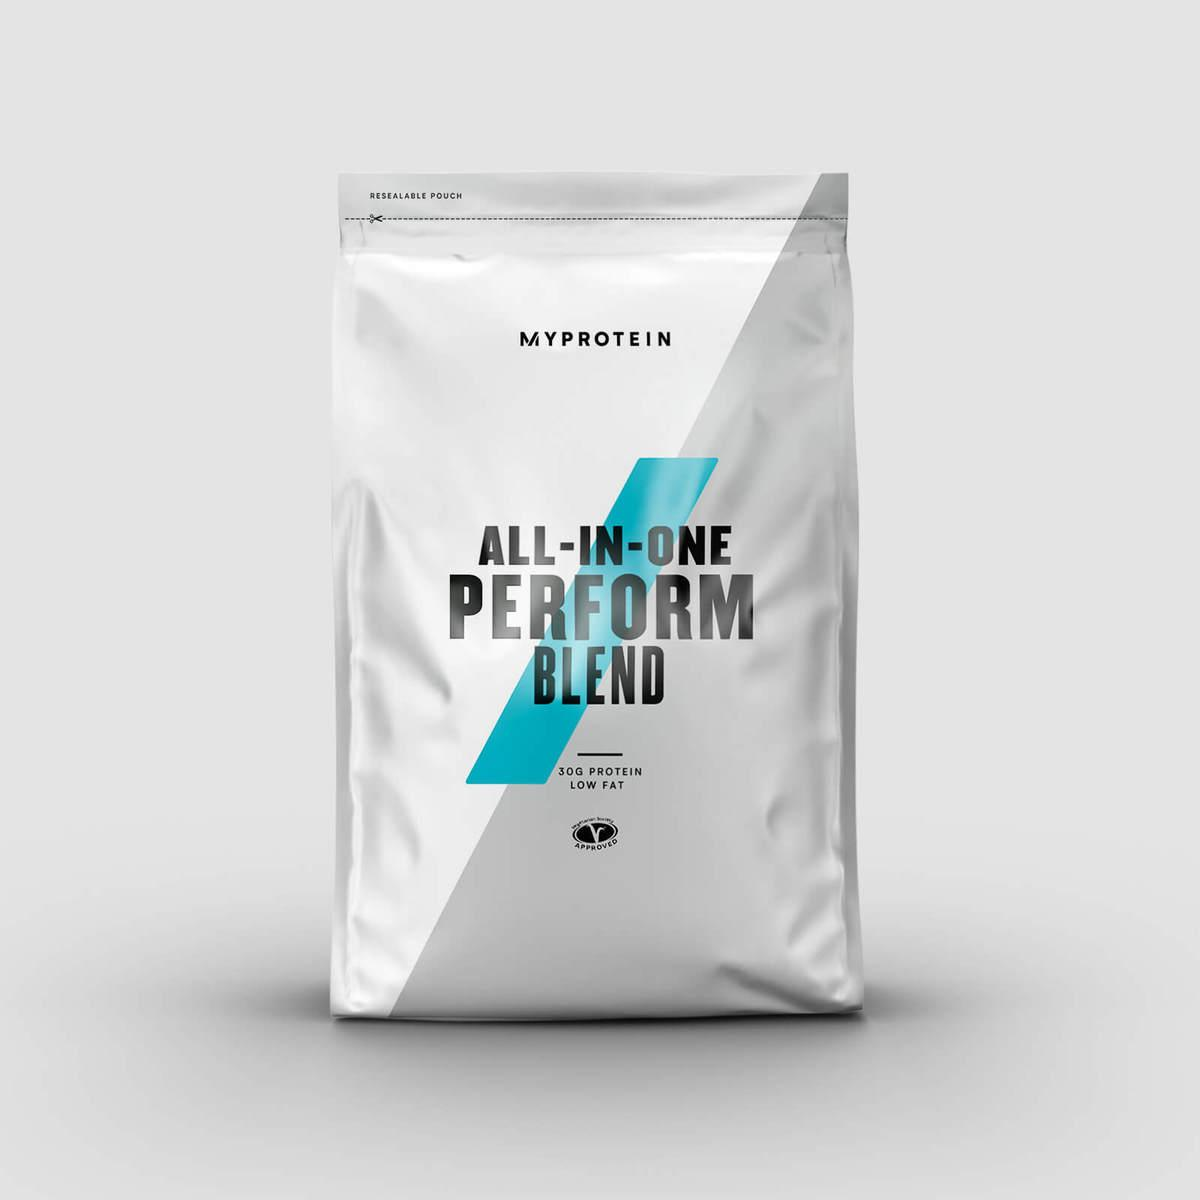 All in one perform blend